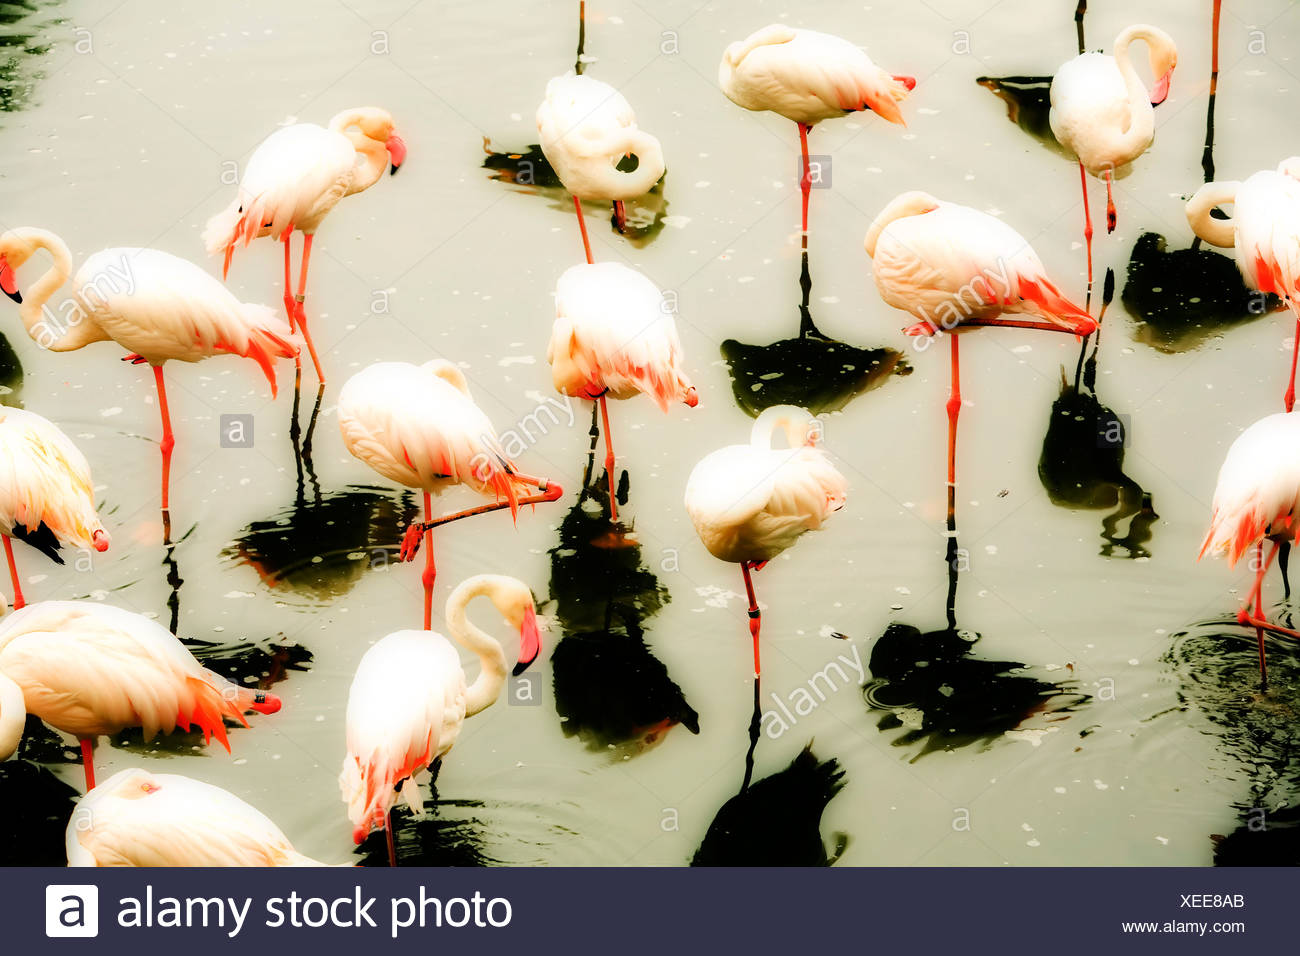 Group of flamingos in pond - Stock Image